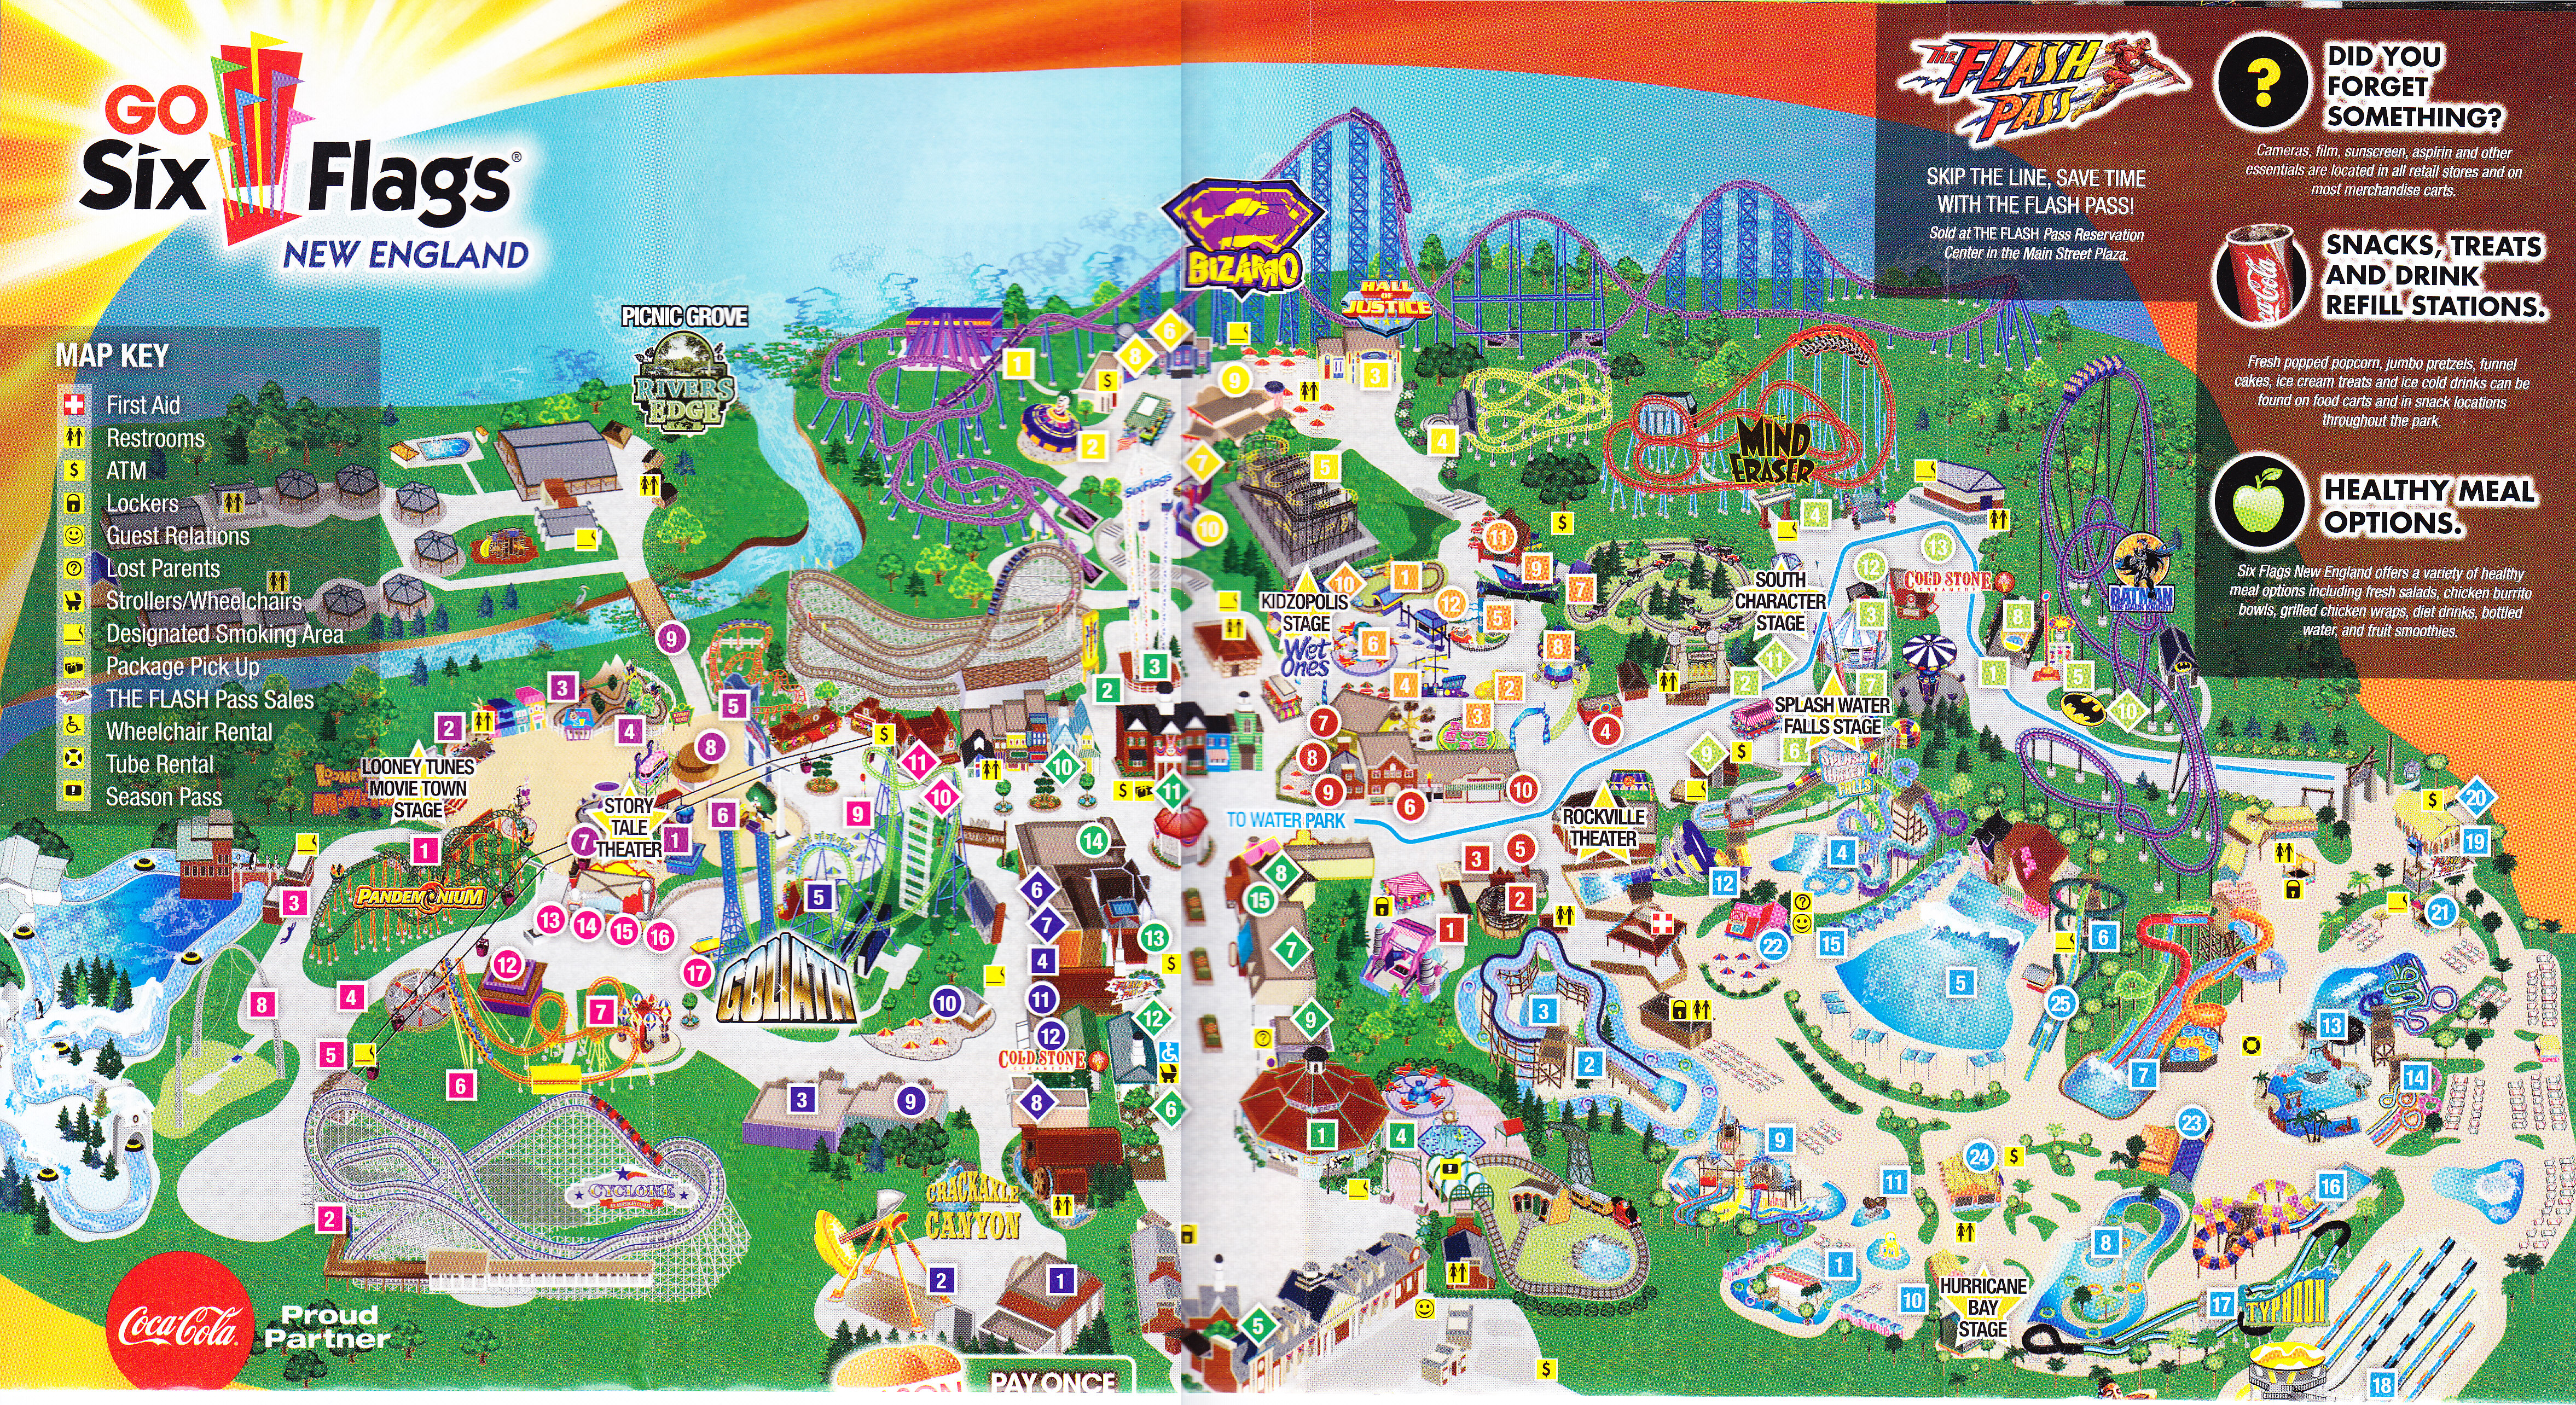 Six flags new england 2013 park map gumiabroncs Choice Image